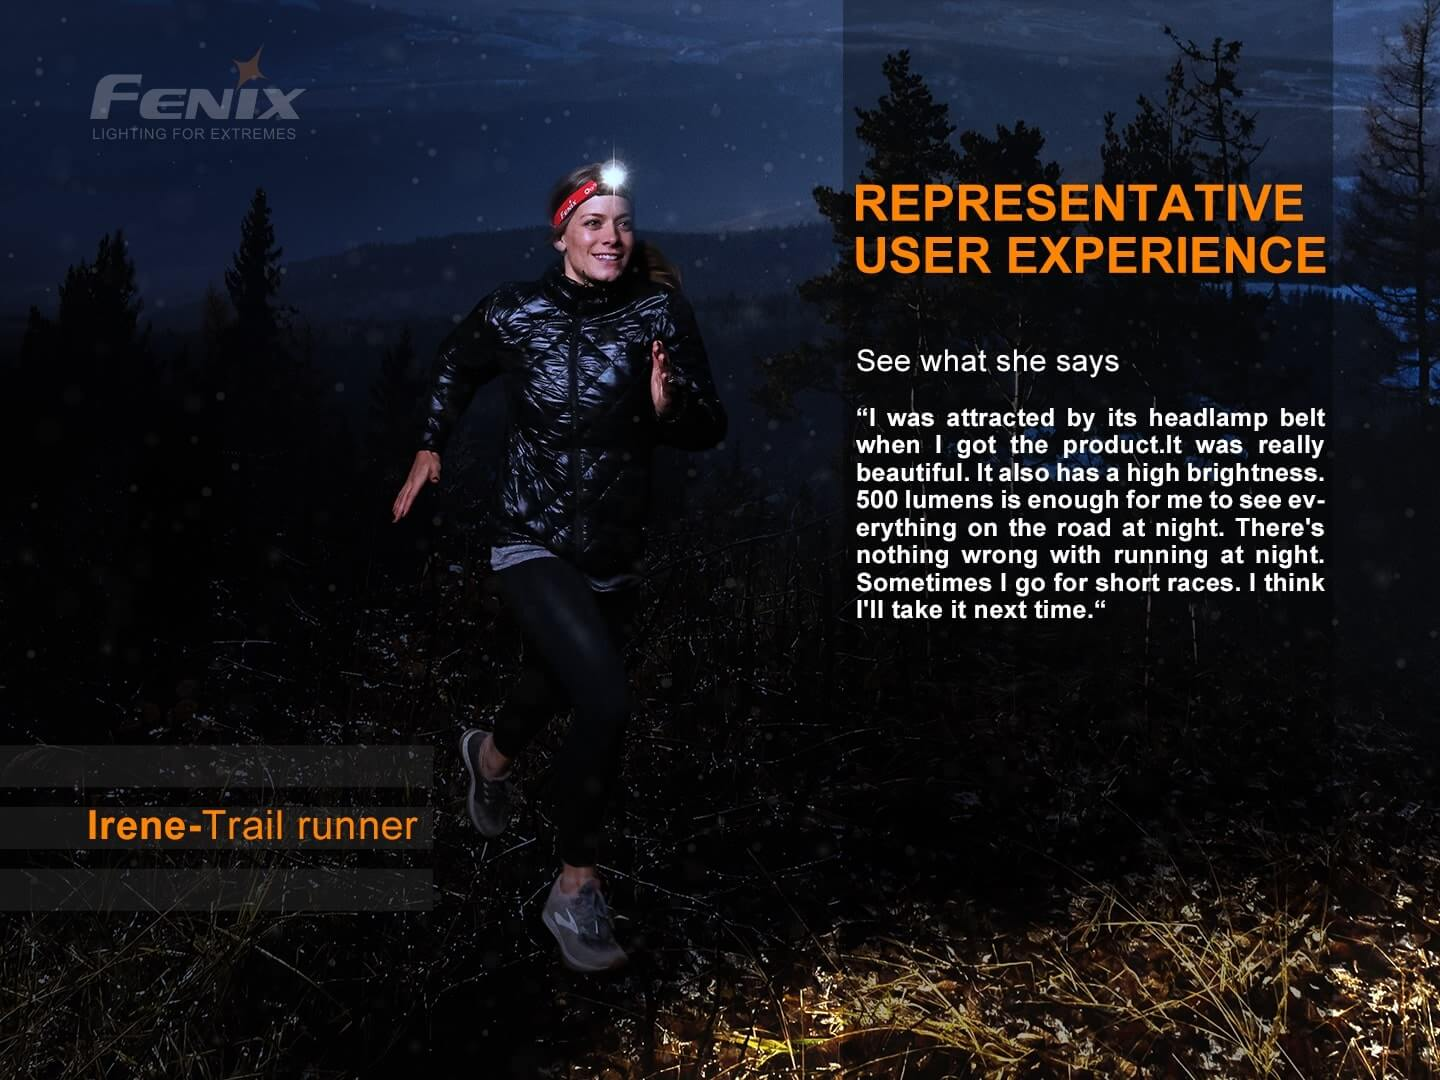 Fenix HL18R-T LED Rechargeable Headlamp, Ultralight Trail Running LED Head Torch, 500 Lumens Hand-Free Lighting, Perfect Head Torch for Outdoors EDC Walks & Work